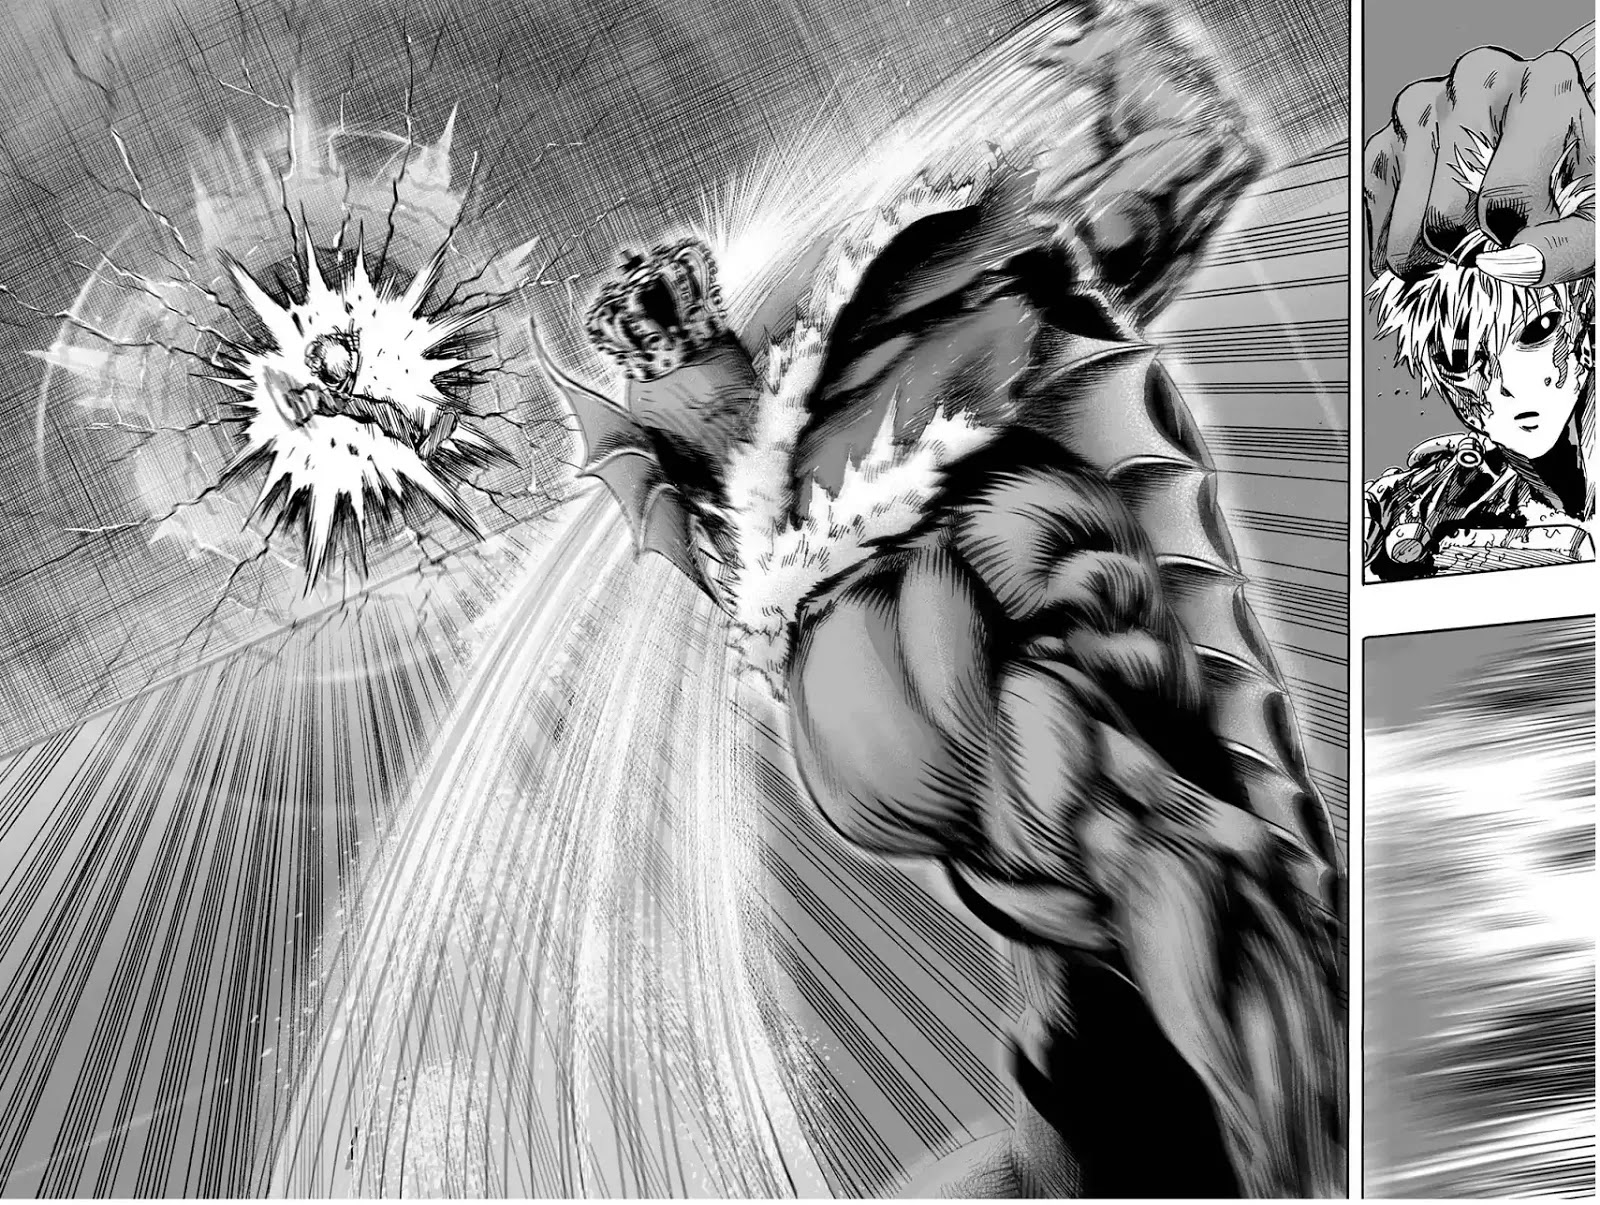 One Punch Man, Chapter Onepunch-Man 27 image 004